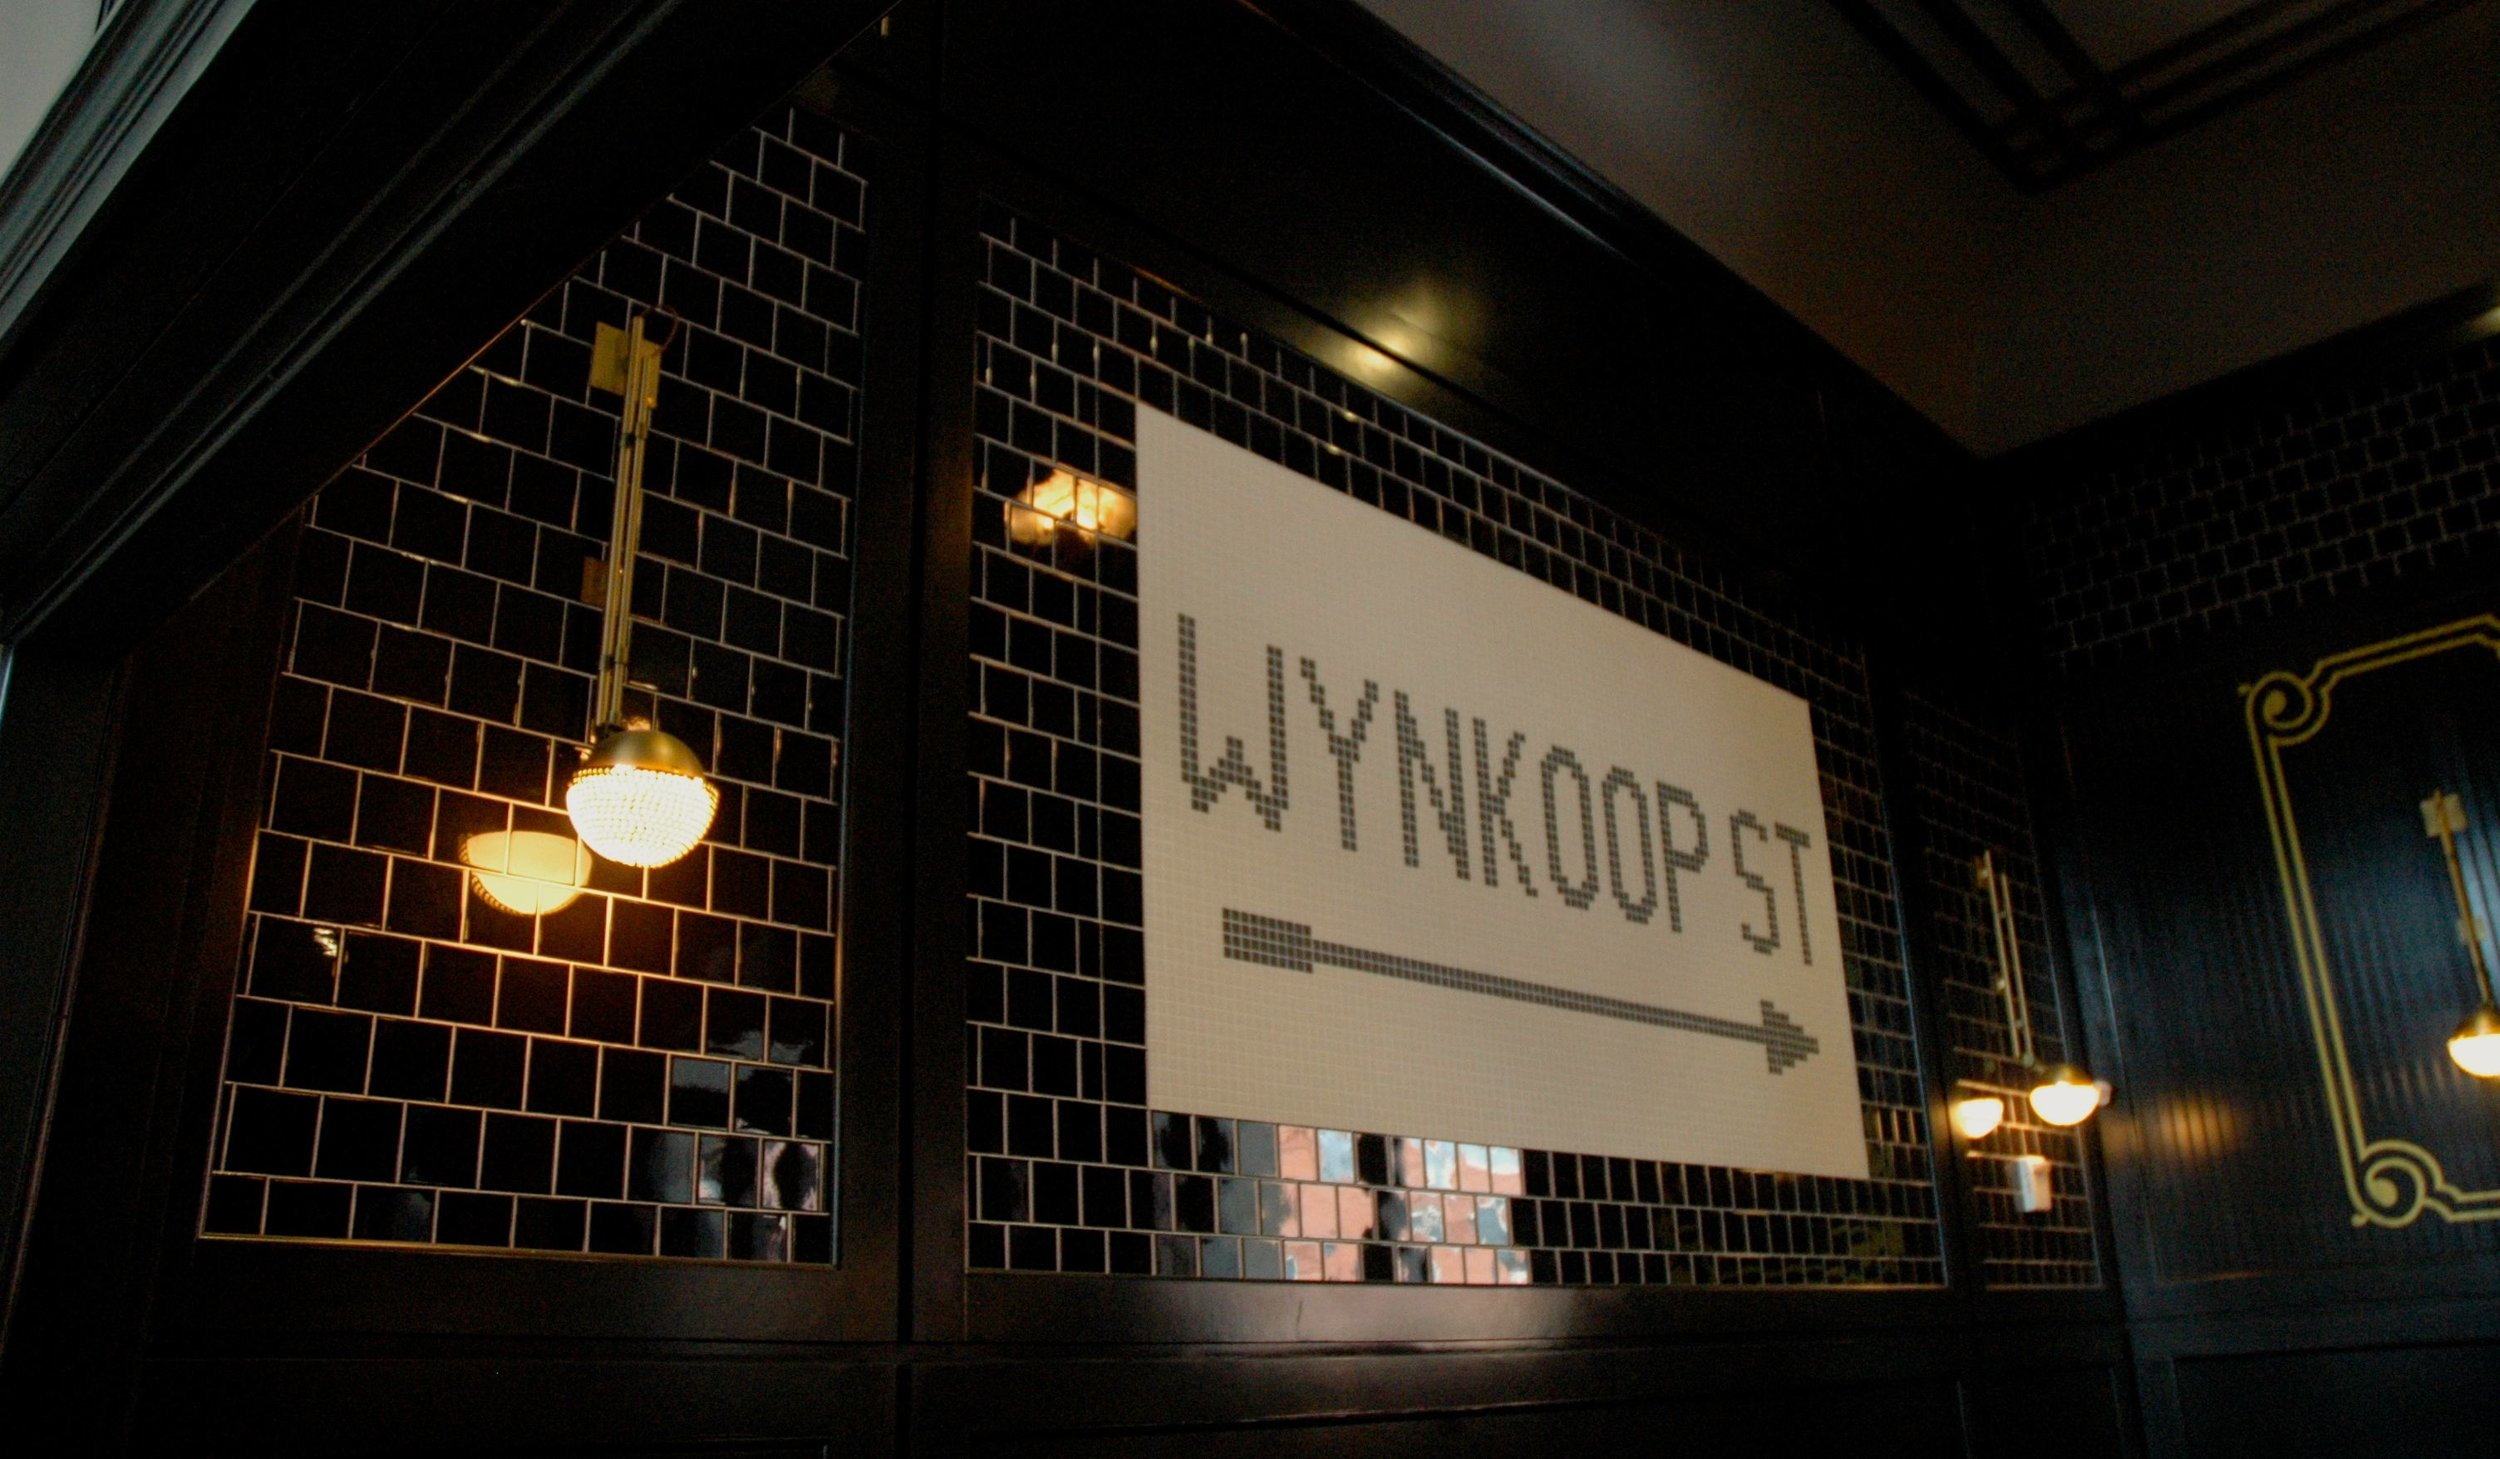 train wynkoop